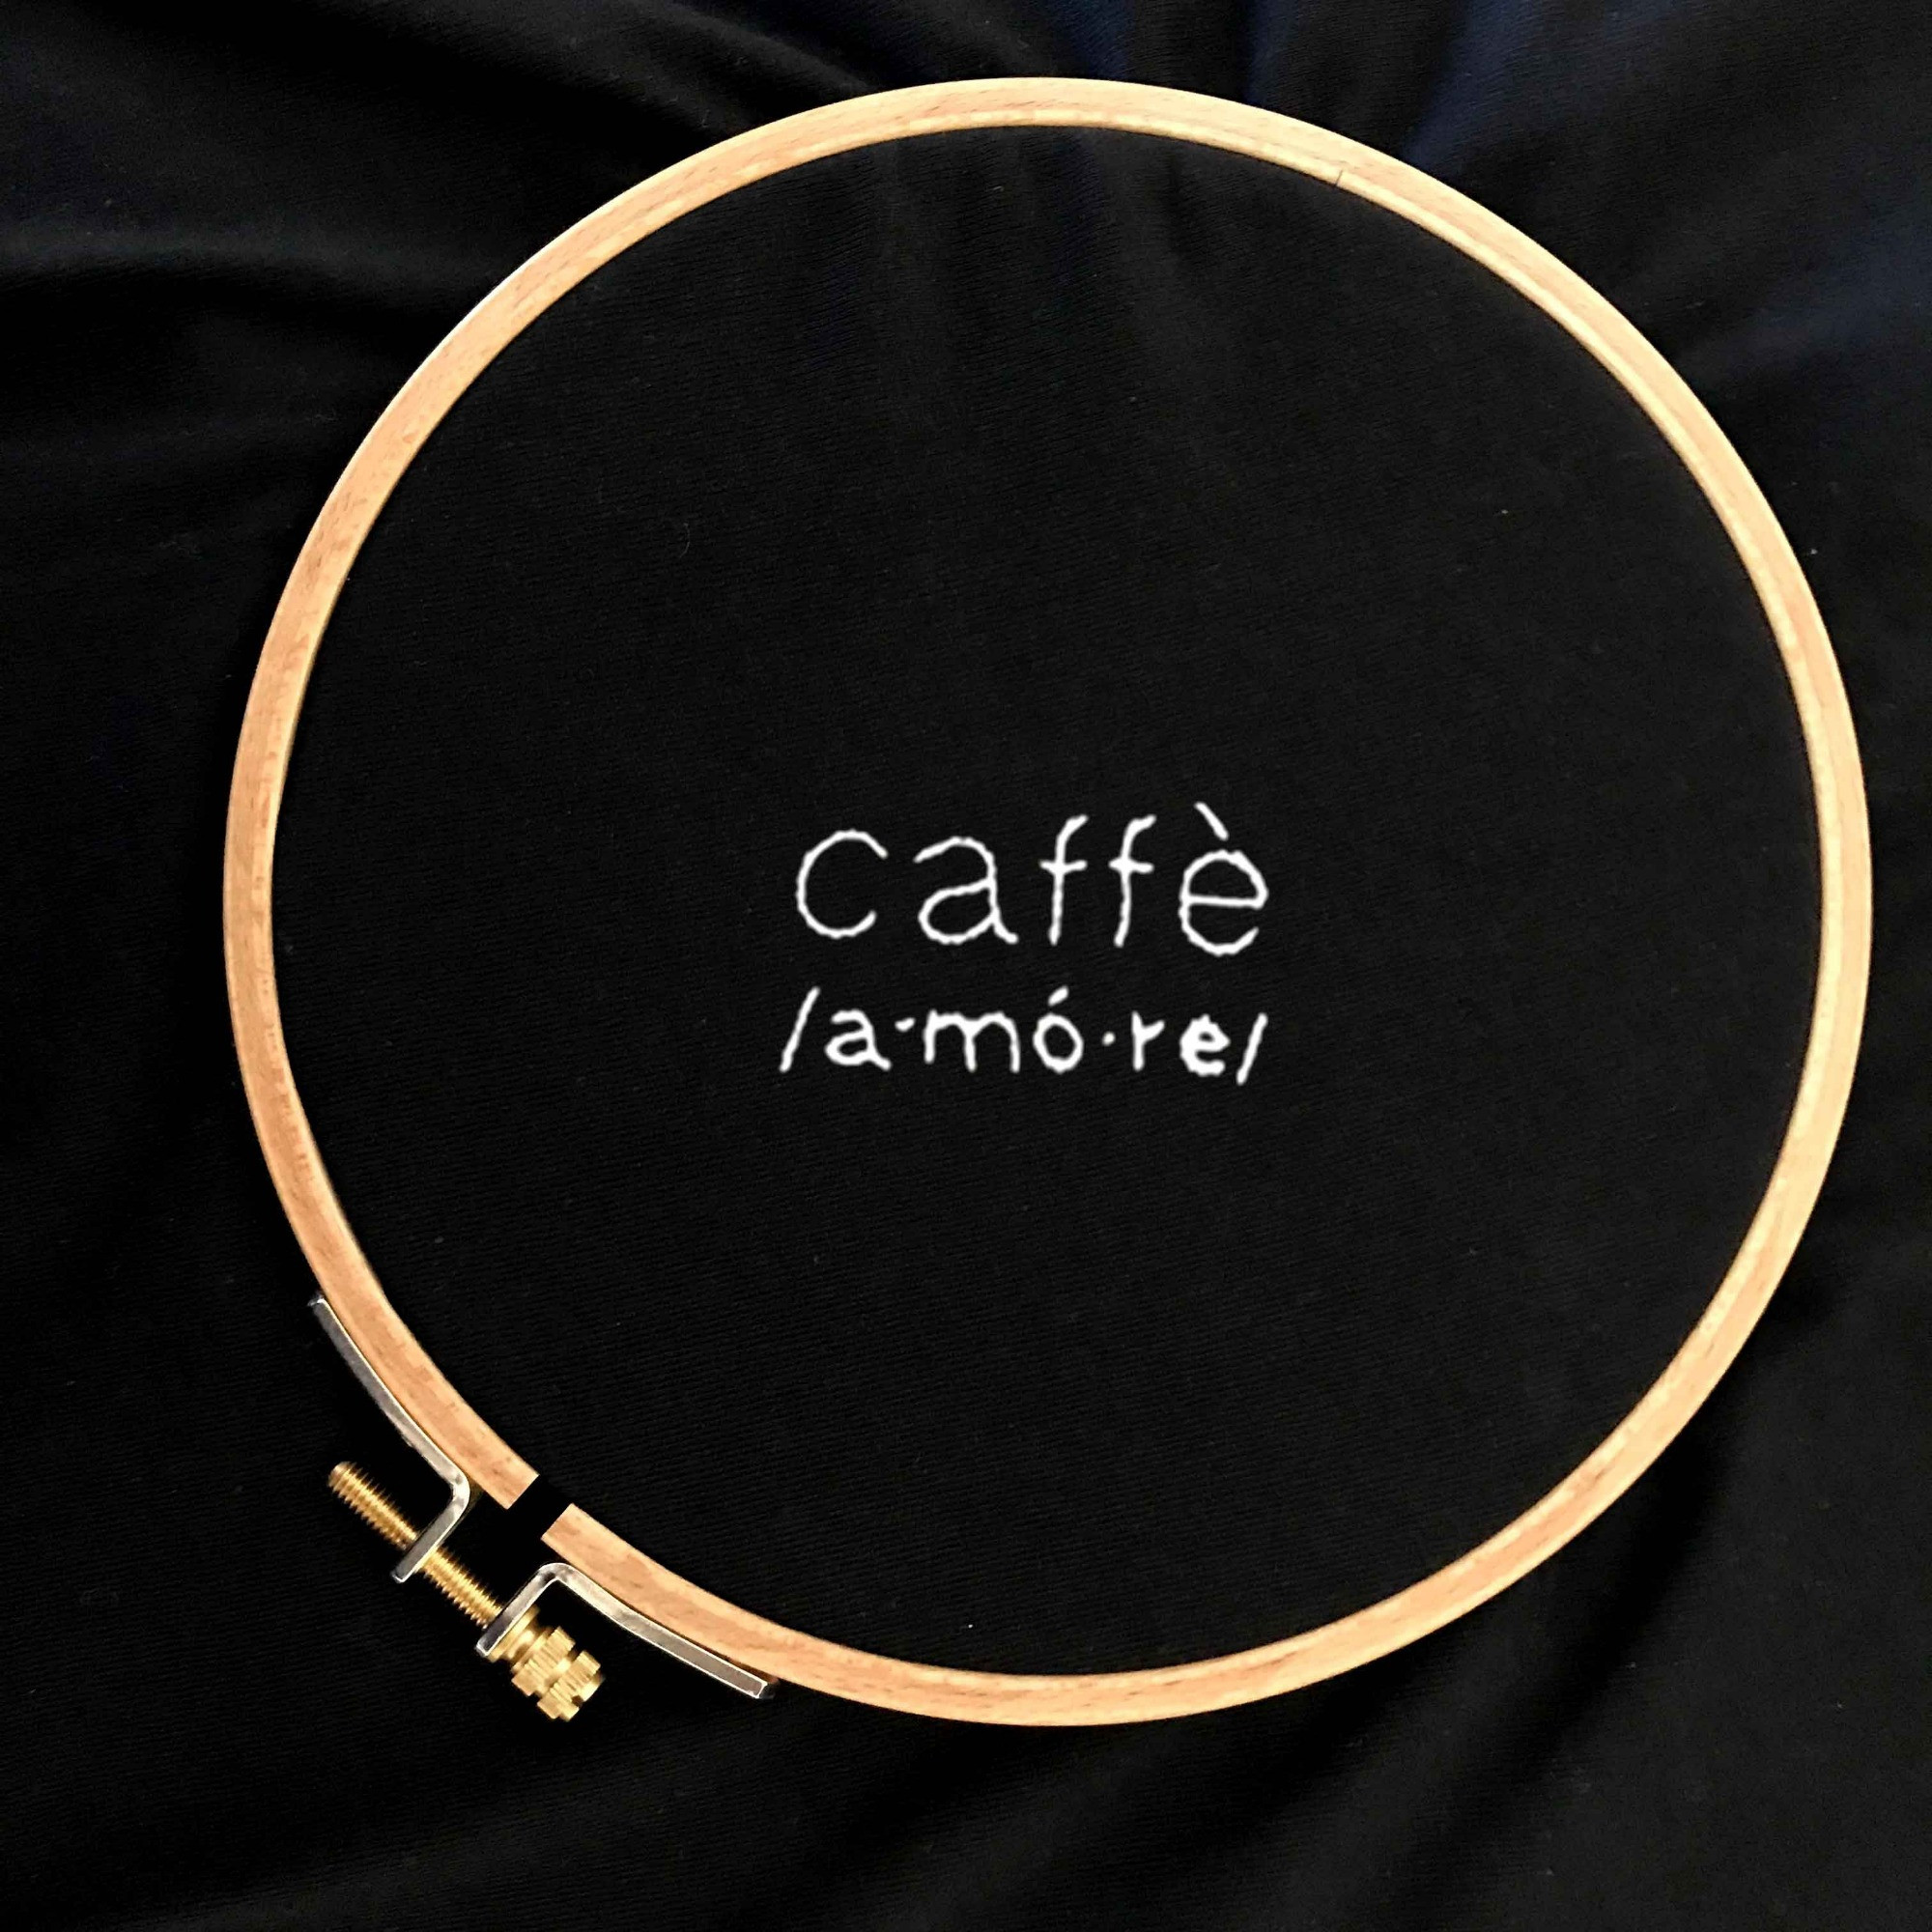 The LOVE CAFFè Tee